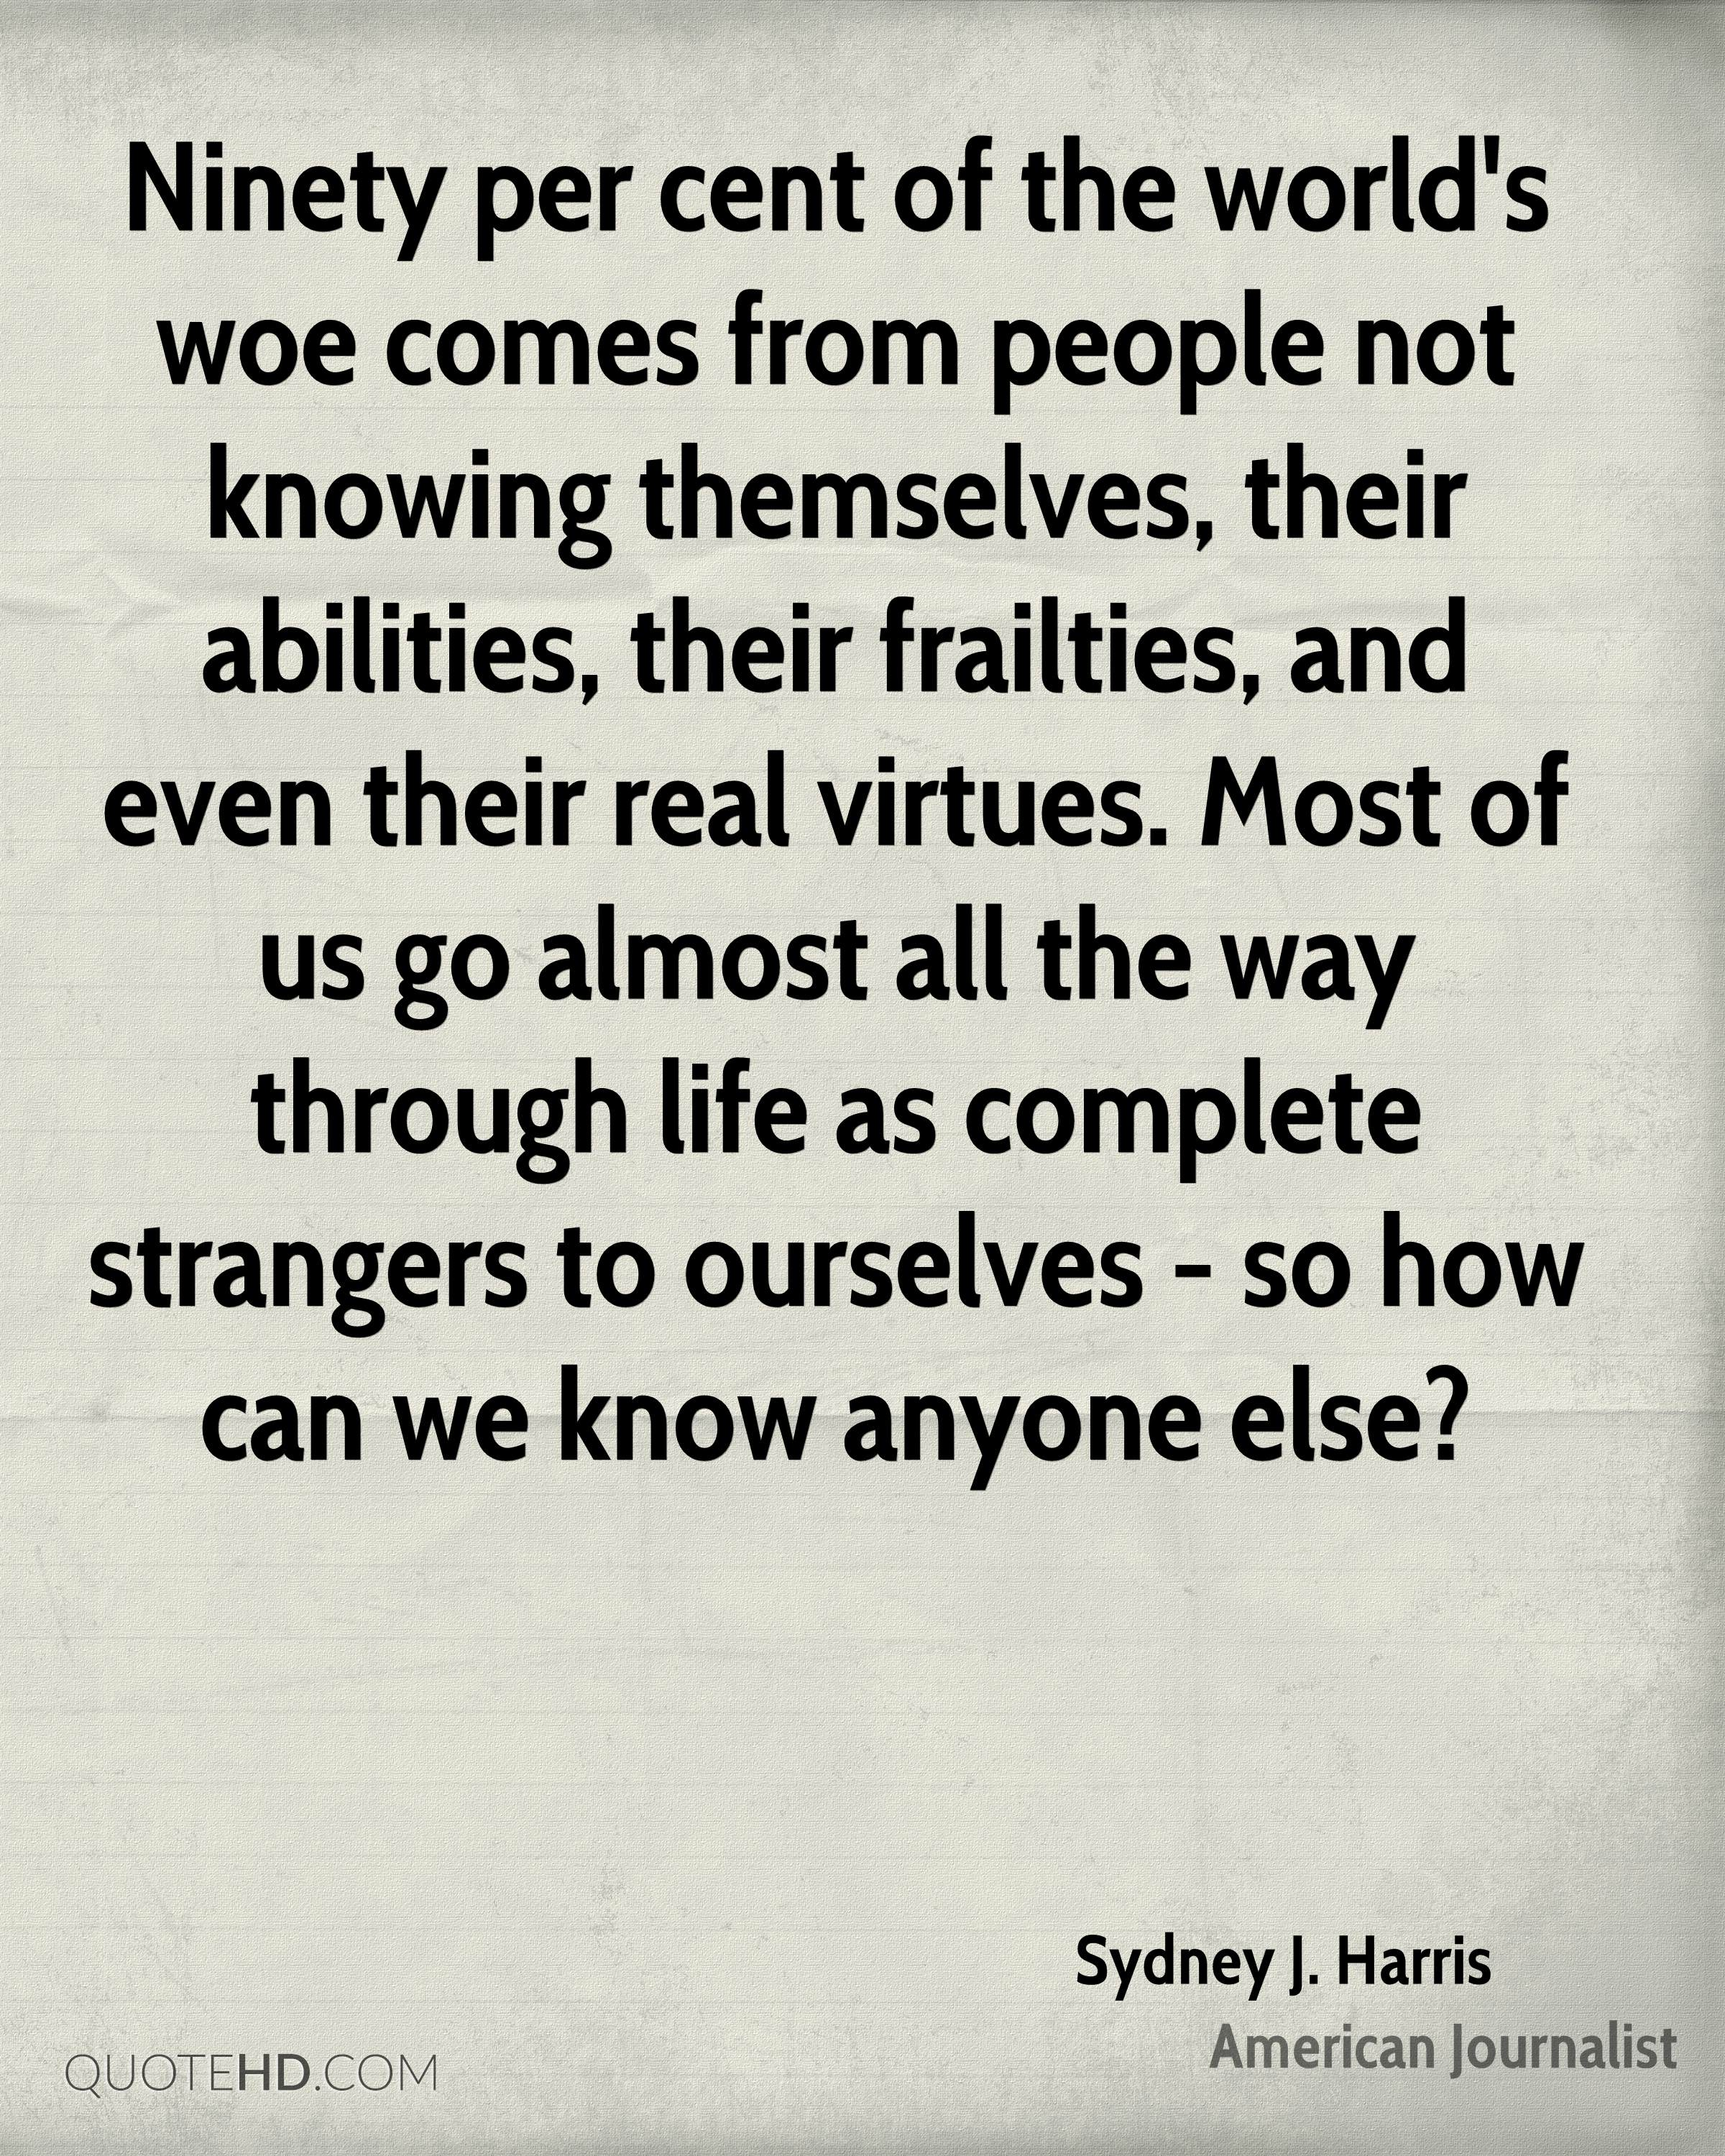 Ninety per cent of the world's woe comes from people not knowing themselves, their abilities, their frailties, and even their real virtues. Most of us go almost all the way through life as complete strangers to ourselves - so how can we know anyone else?